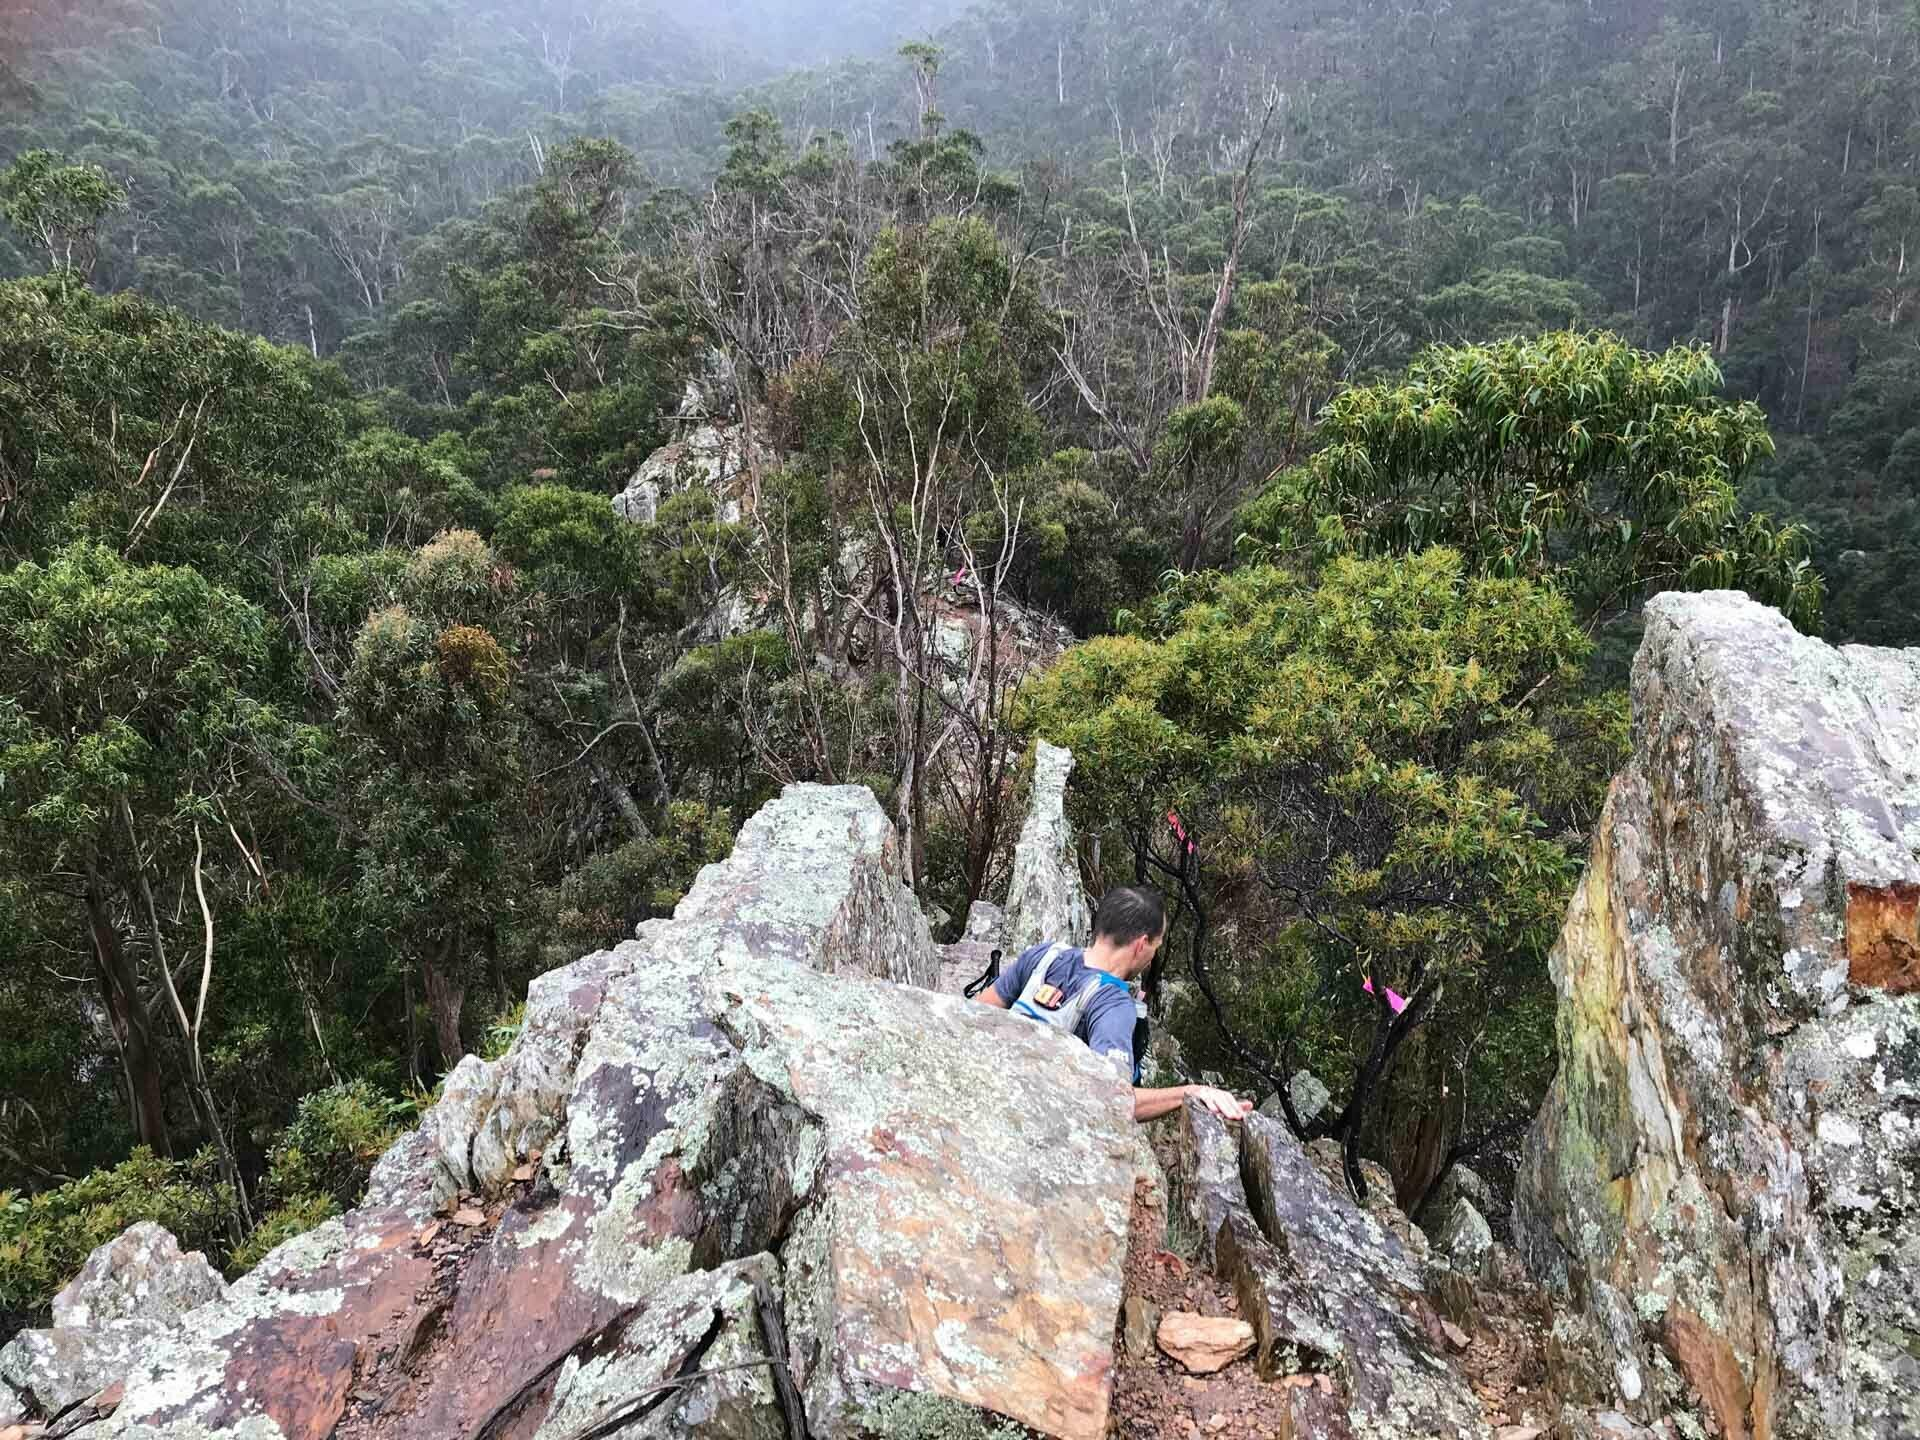 One of the Gnarliest Races in the Southern Hemisphere Can Be Found Just Out of Melbourne, photo by the Eventurers, Tom Dade, running, ultrarunning, rough route